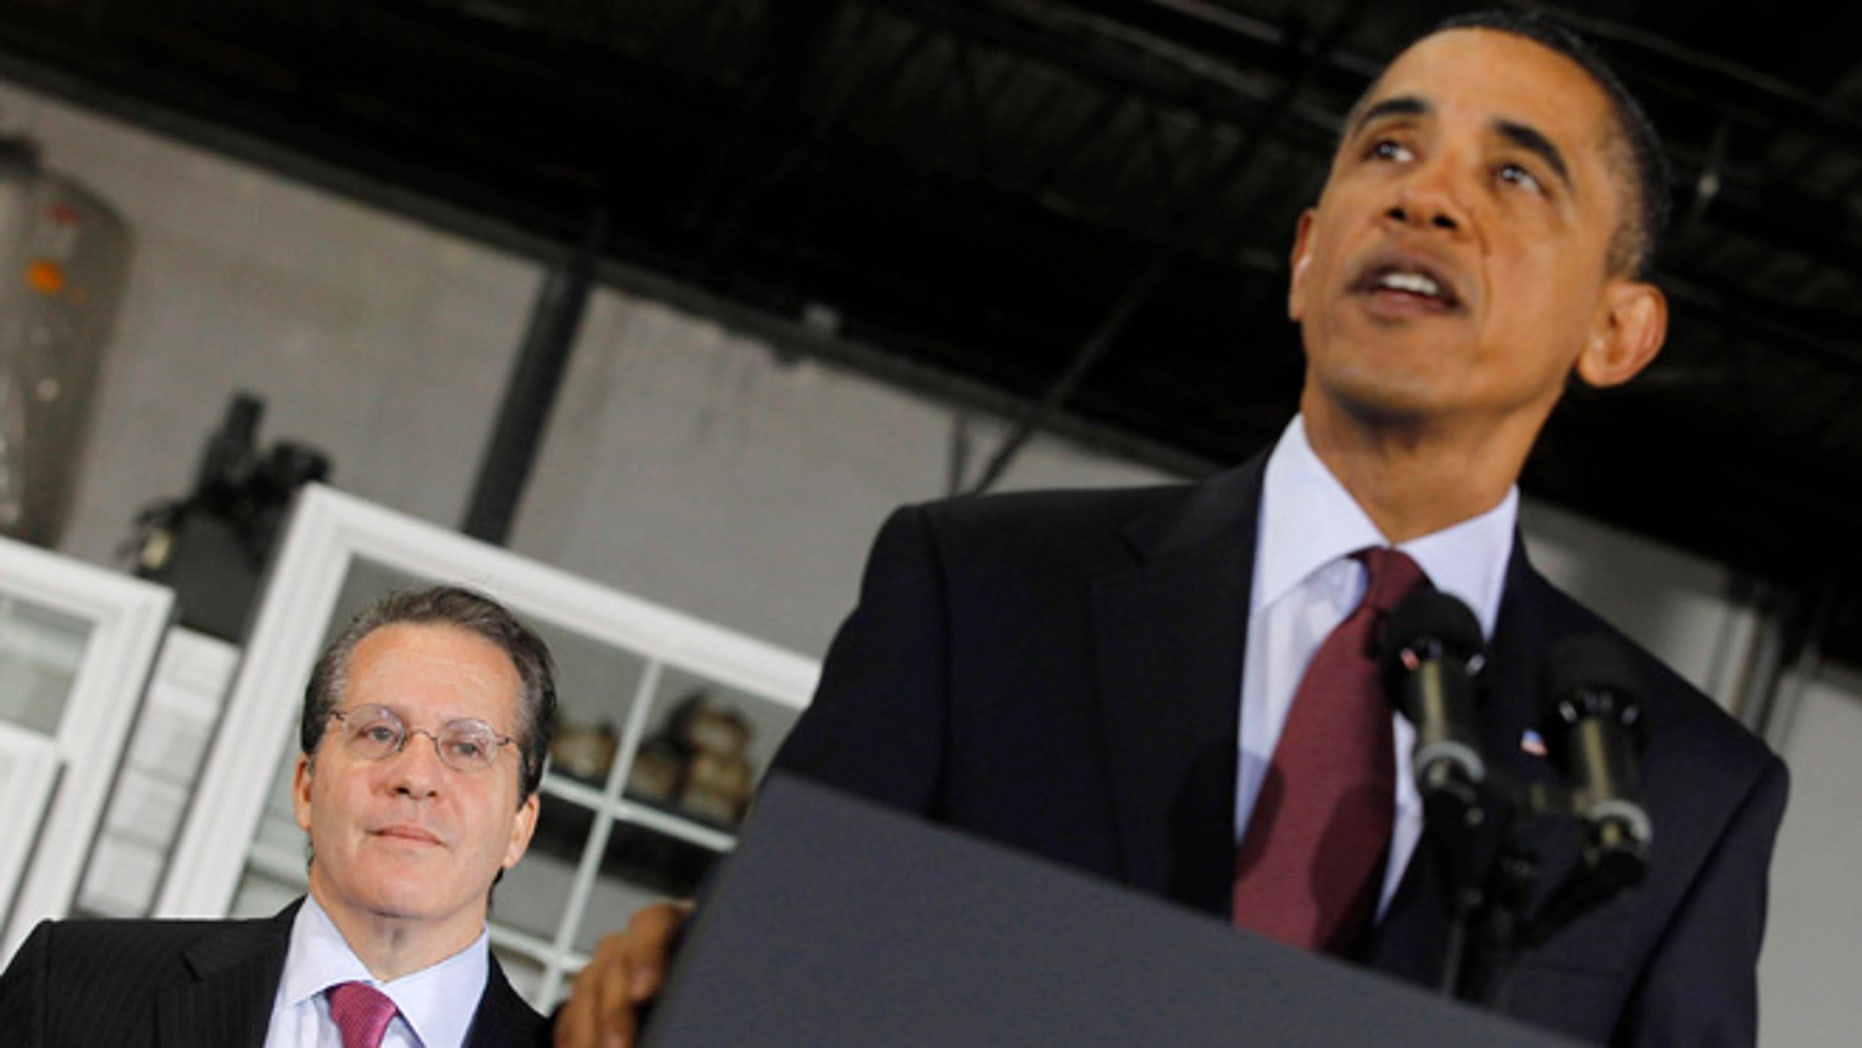 In this Jan. 7, 2011, file photo, President Obama discusses the economy alongside National Economic Council head Gene Sperling in Landover, Md.